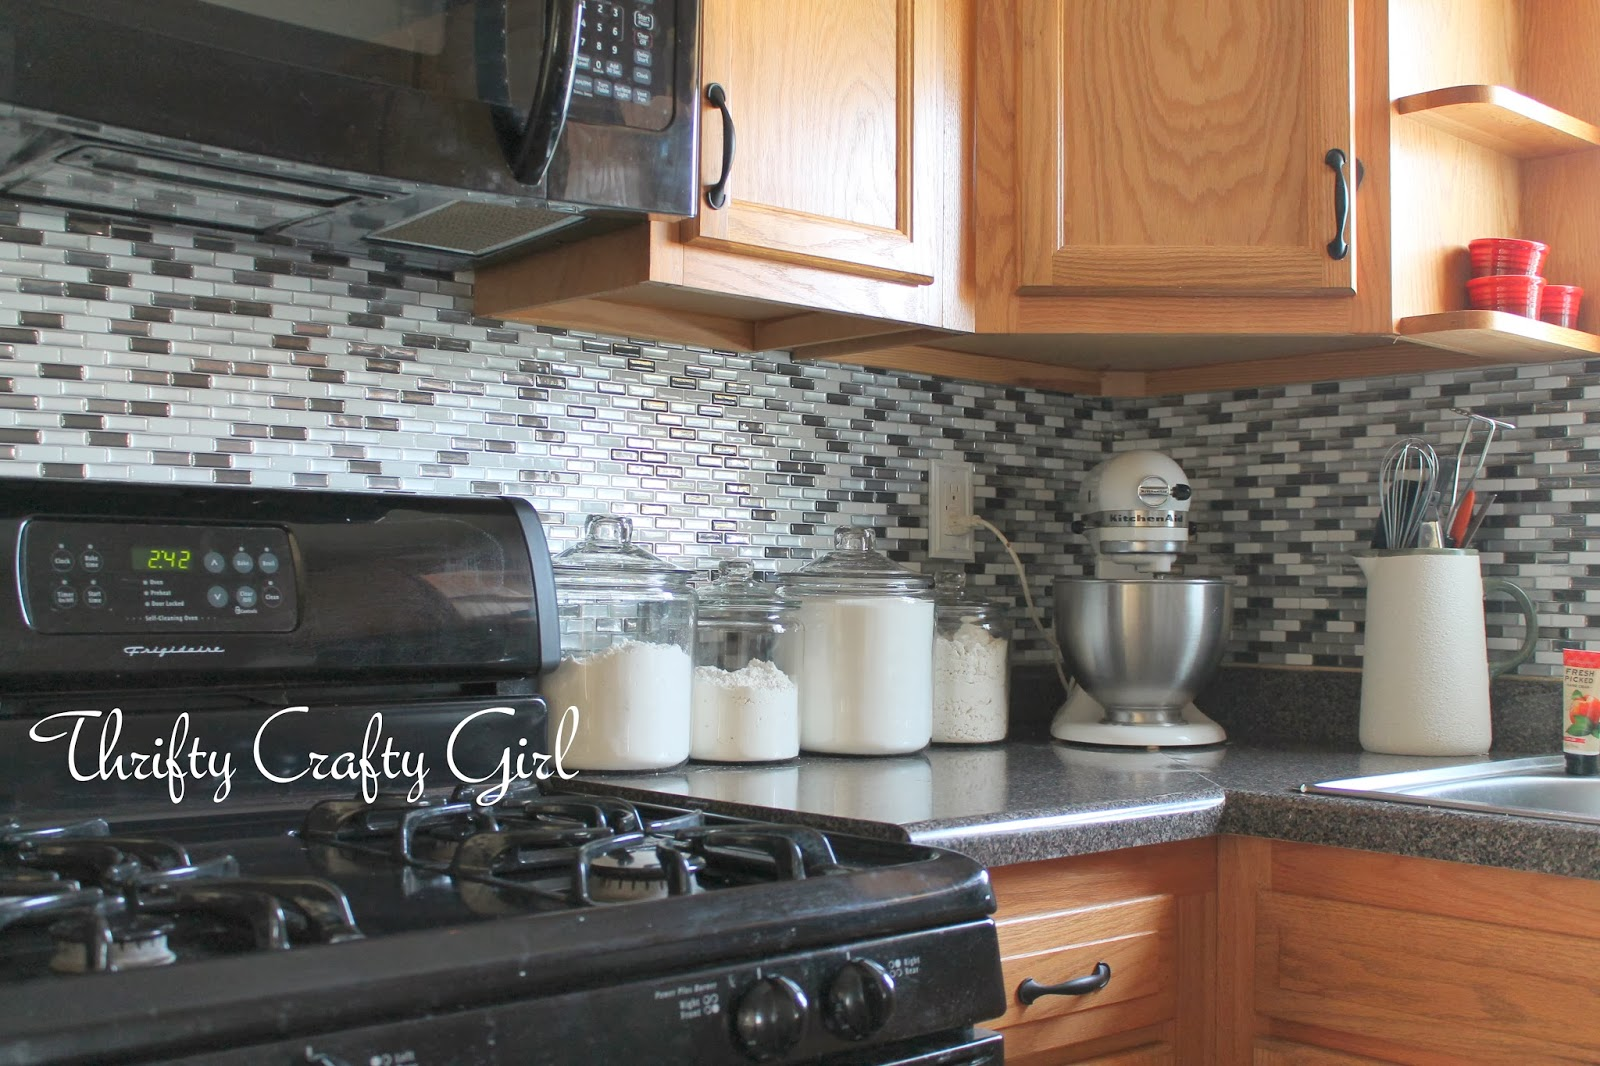 Thrifty crafty girl easy kitchen backsplash with smart tiles i absolutely love them and another bonus these are removable take a hair dryer to the corner of a tile and heat it up it will peel off if you decide solutioingenieria Images